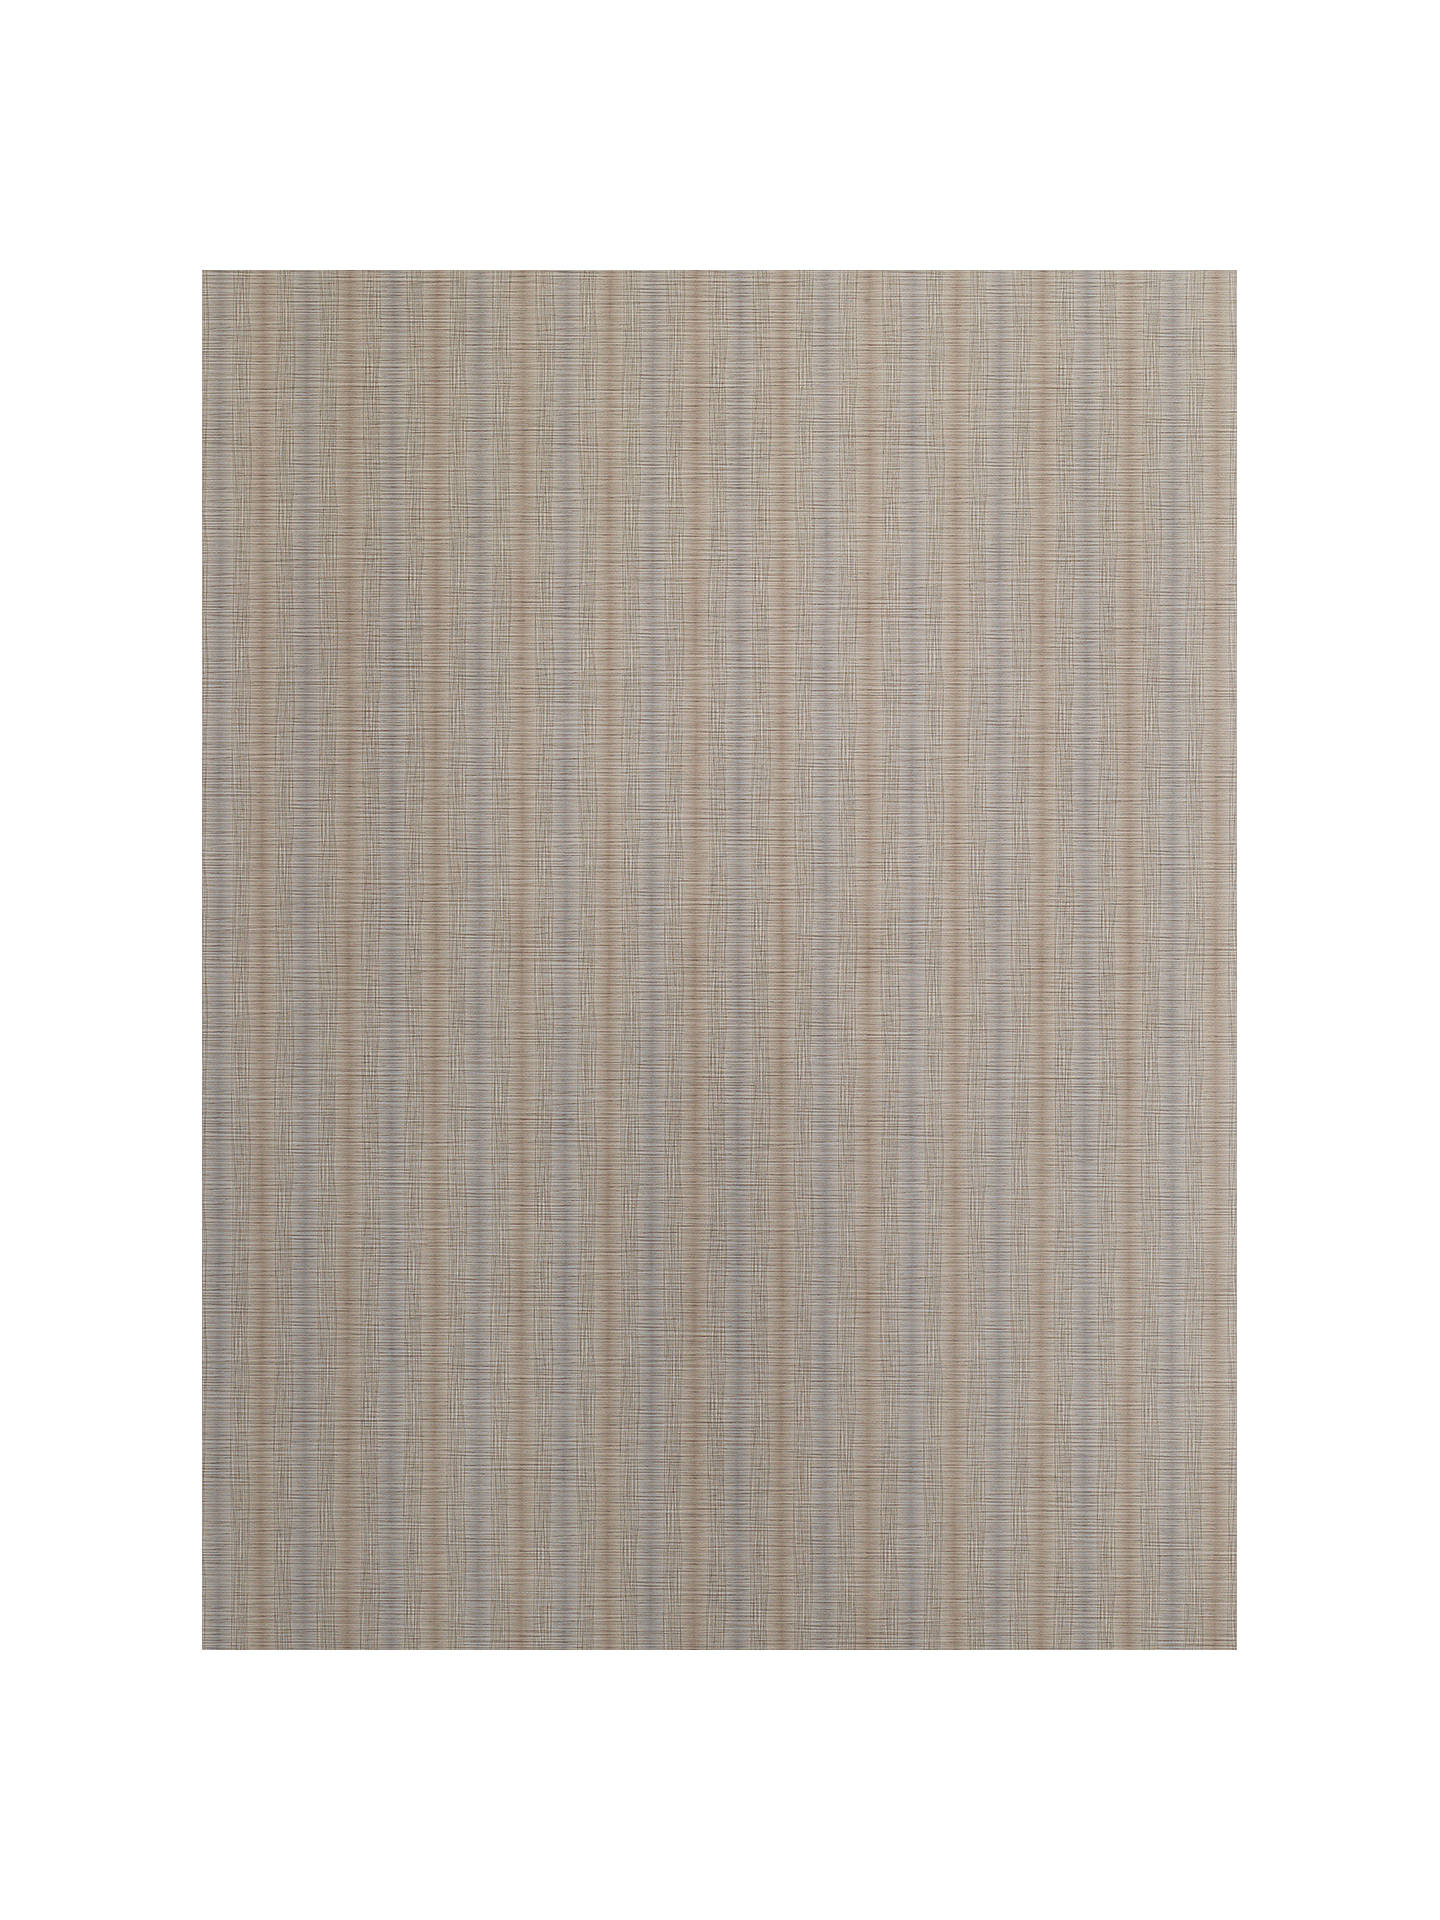 Buy Osborne & Little Raffia Wallpaper, W7191-05 Online at johnlewis.com